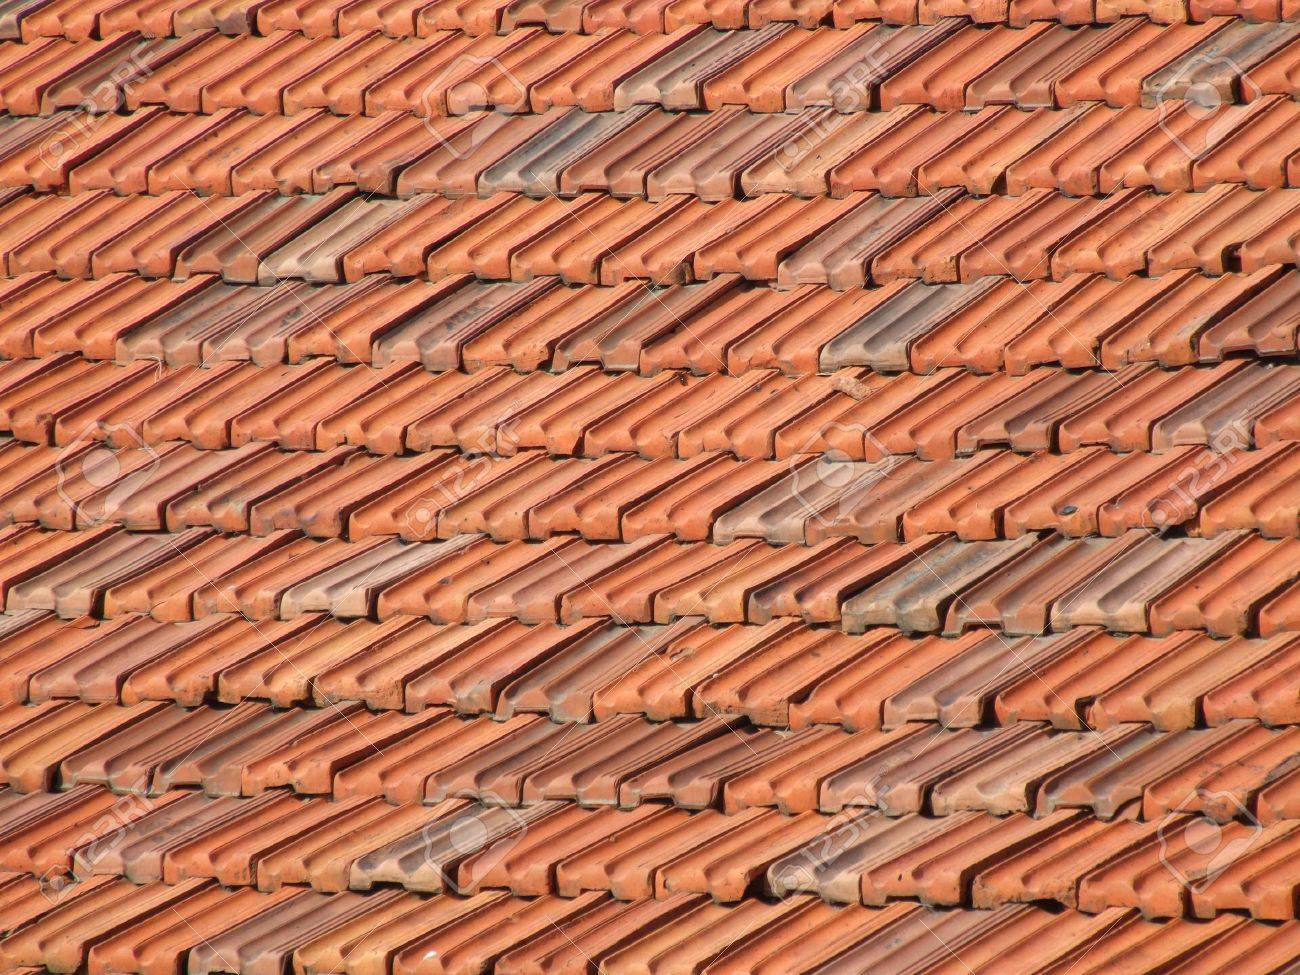 Red And Orange Ceramic Tiles On A Roof. Mediterranean Architecture ...